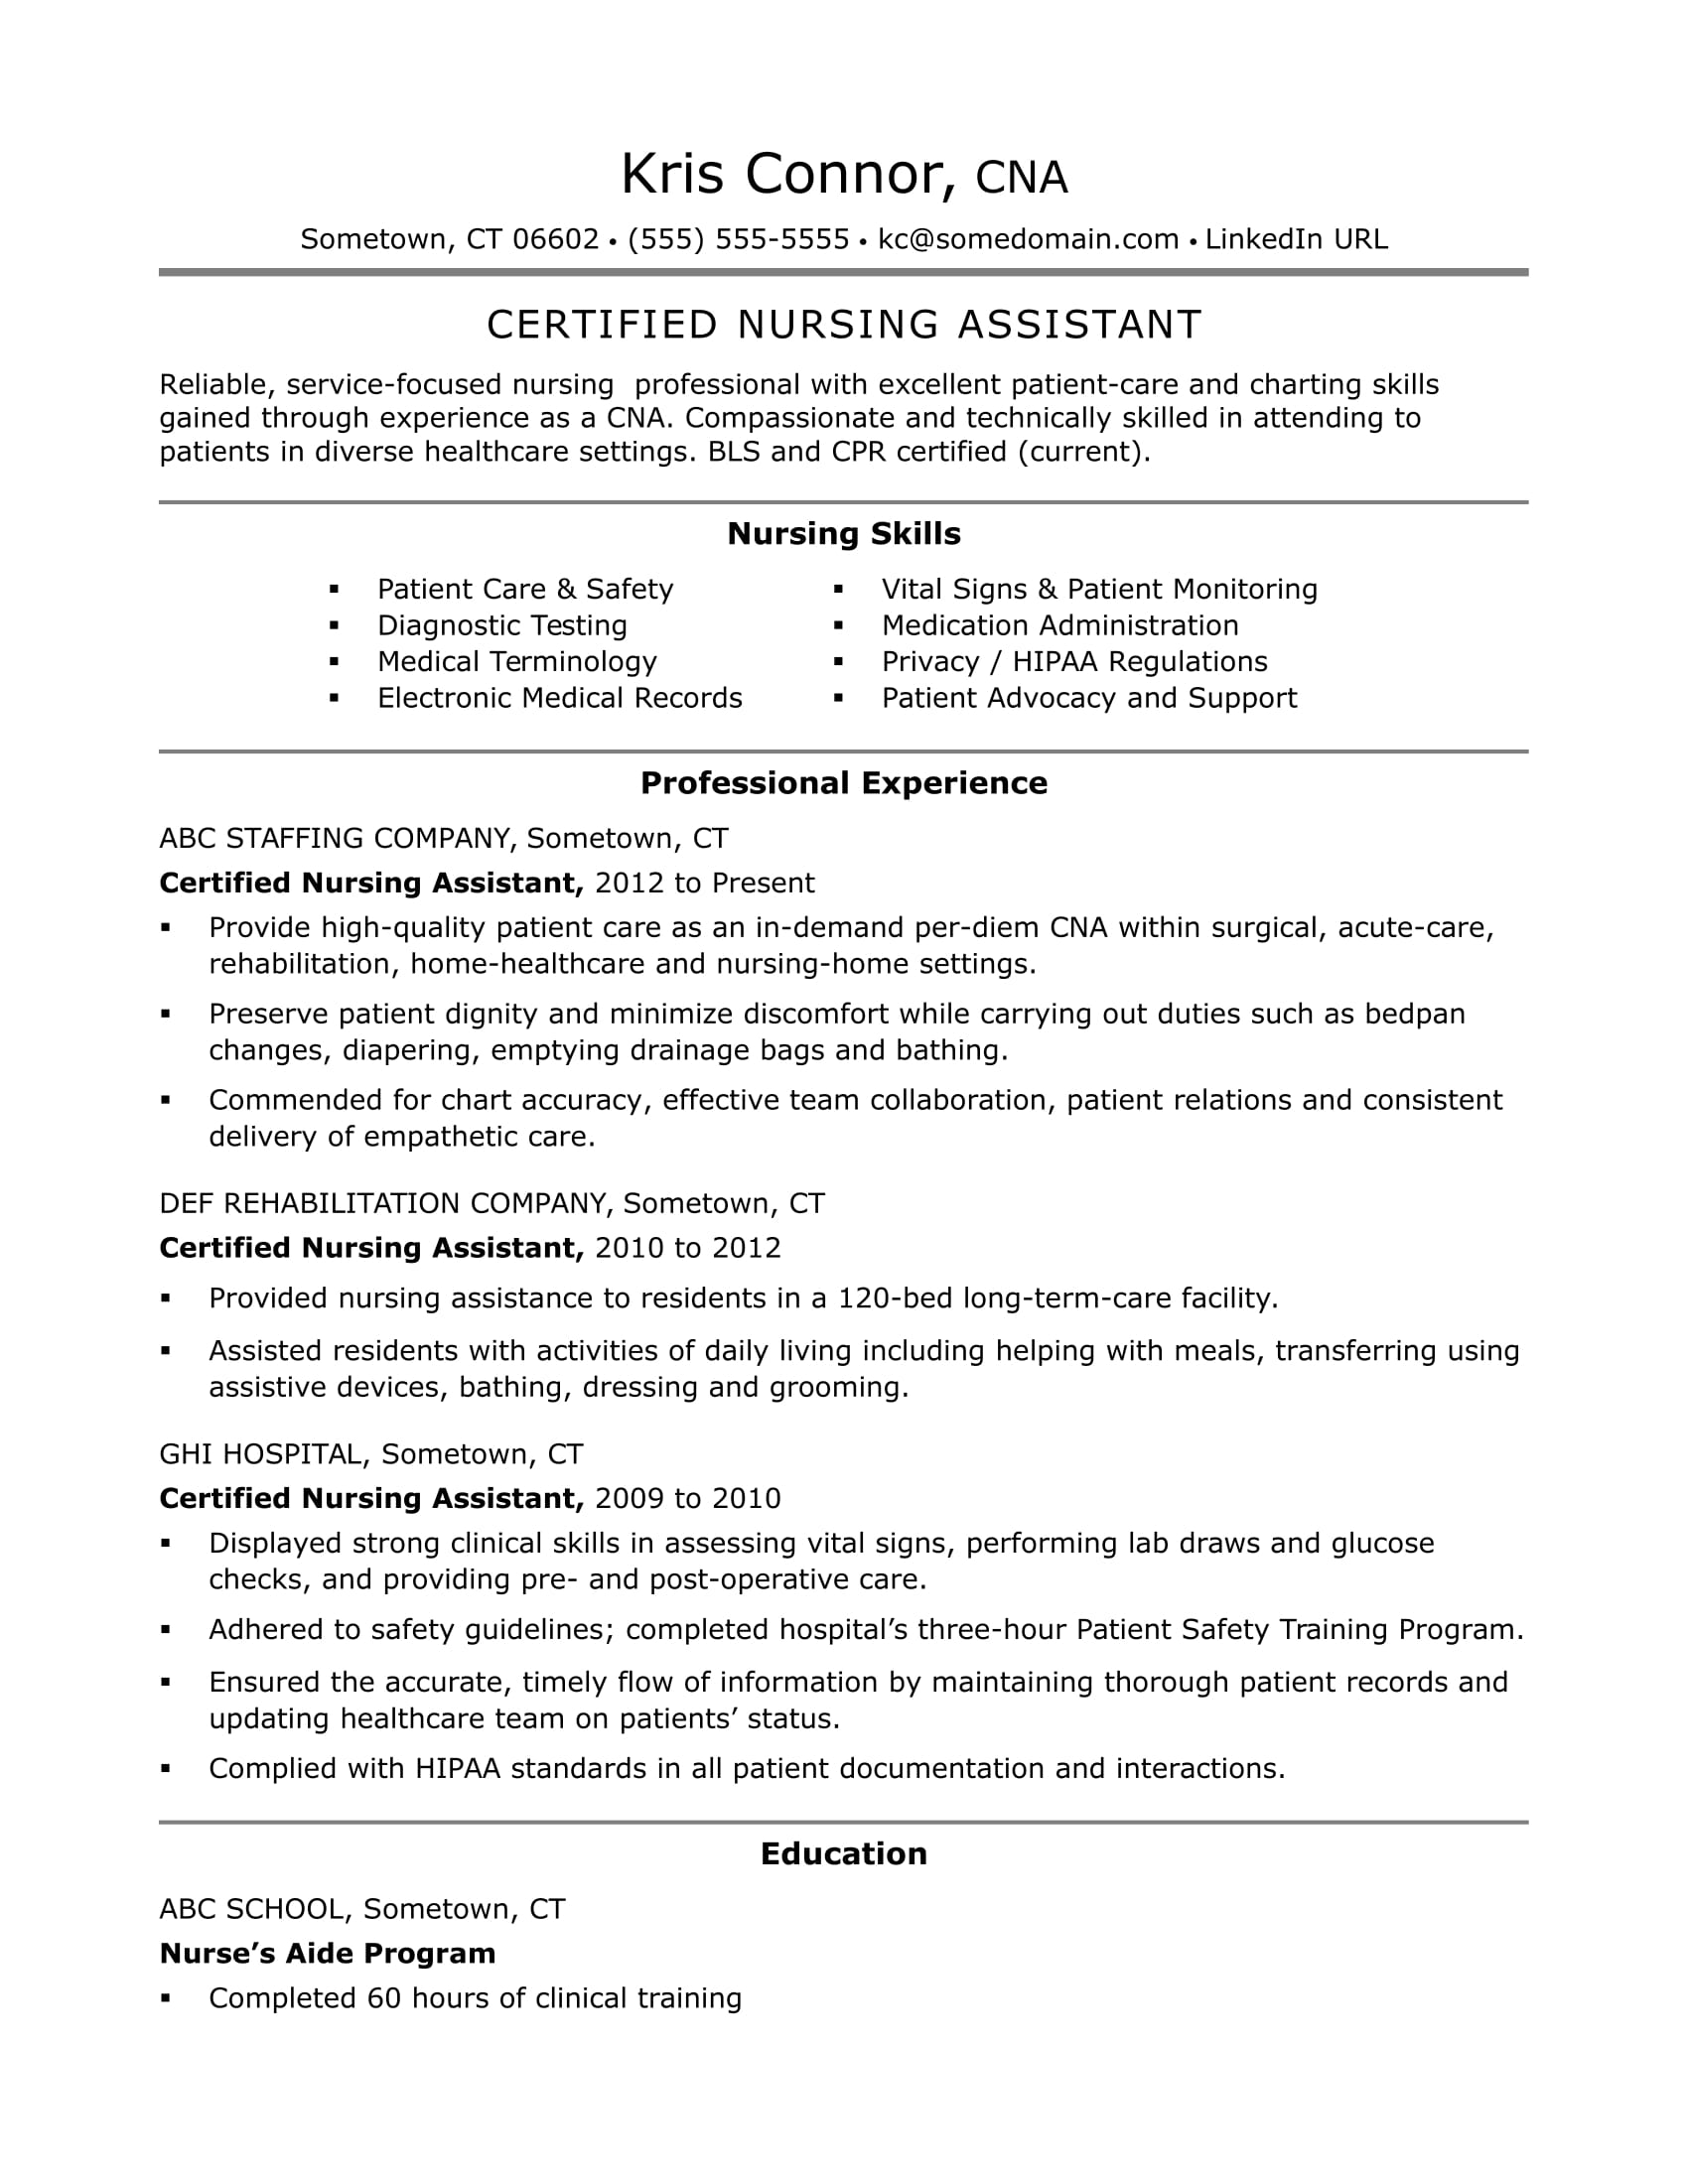 Cna Resume Examples Skills For Cnas Monster  Cna Experience Resume